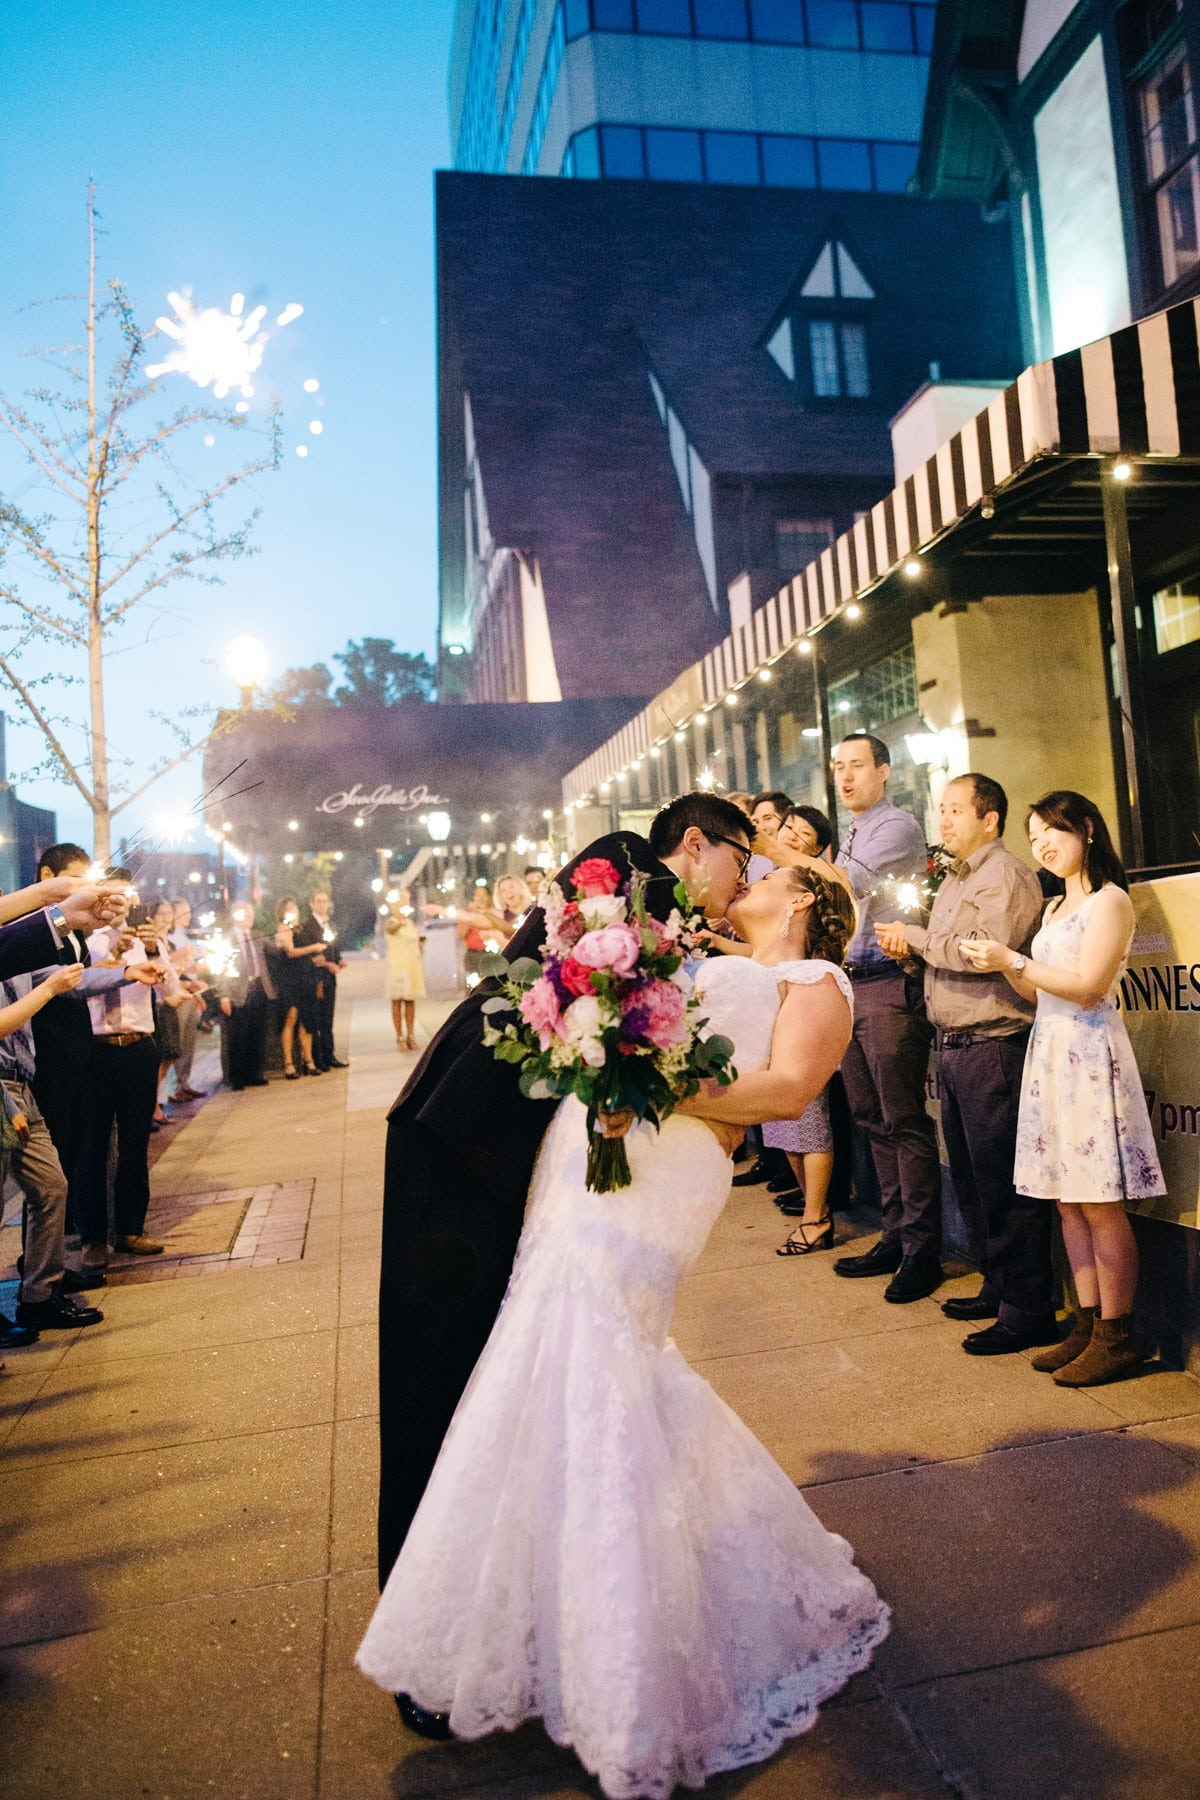 Seven Gables Inn Wedding: Stephanie & Tim | Zoe Life Photography ...